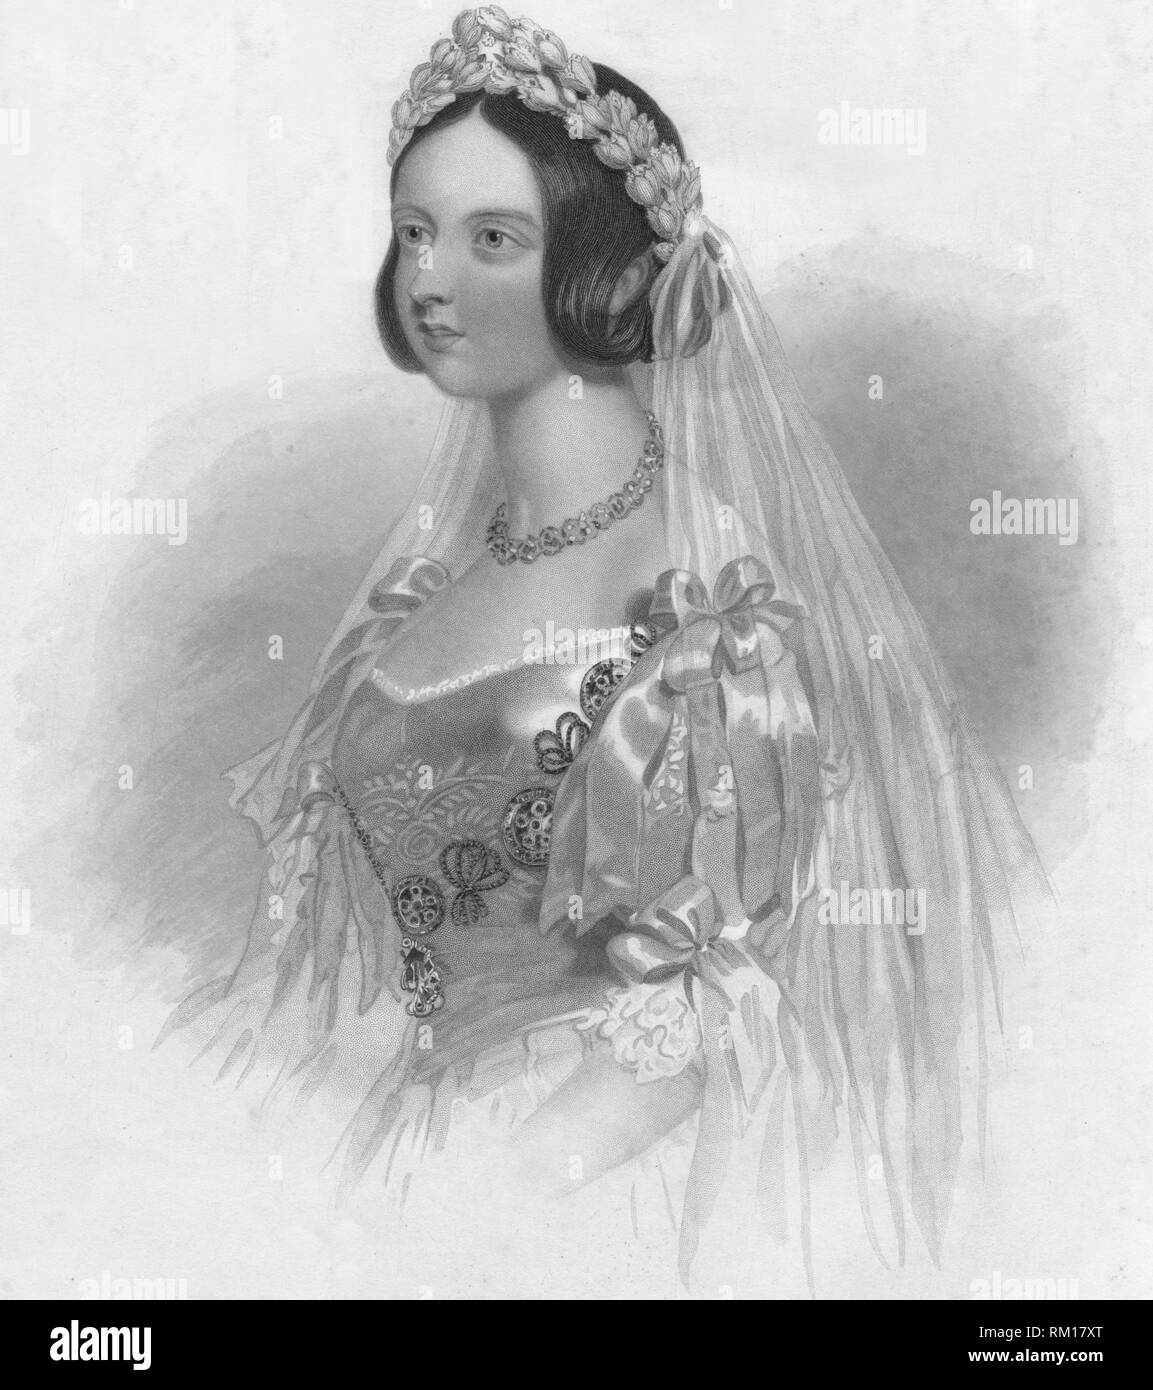 'The Queen in her Bridal Dress', 1840. Creator: William Henry Mote. - Stock Image